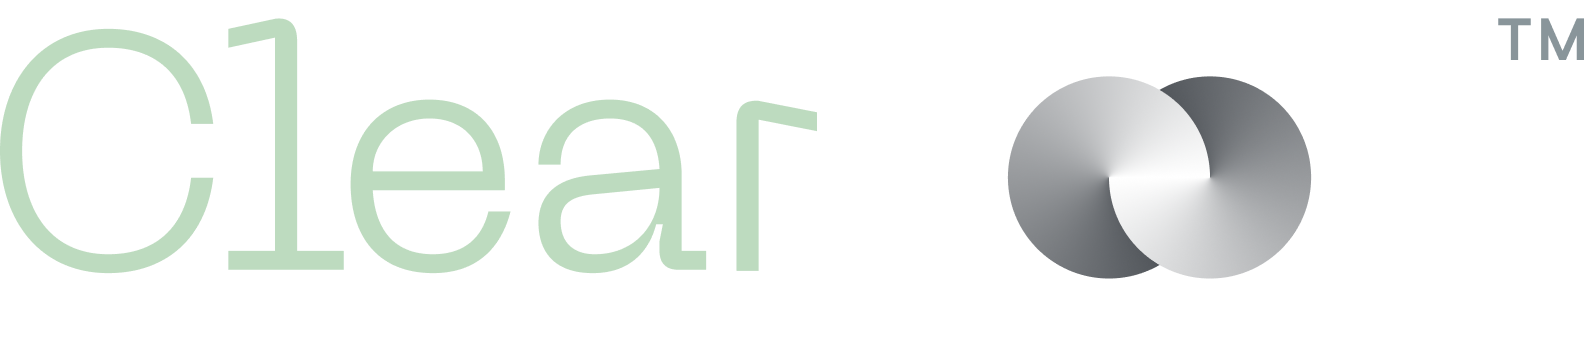 copper clearloop logo